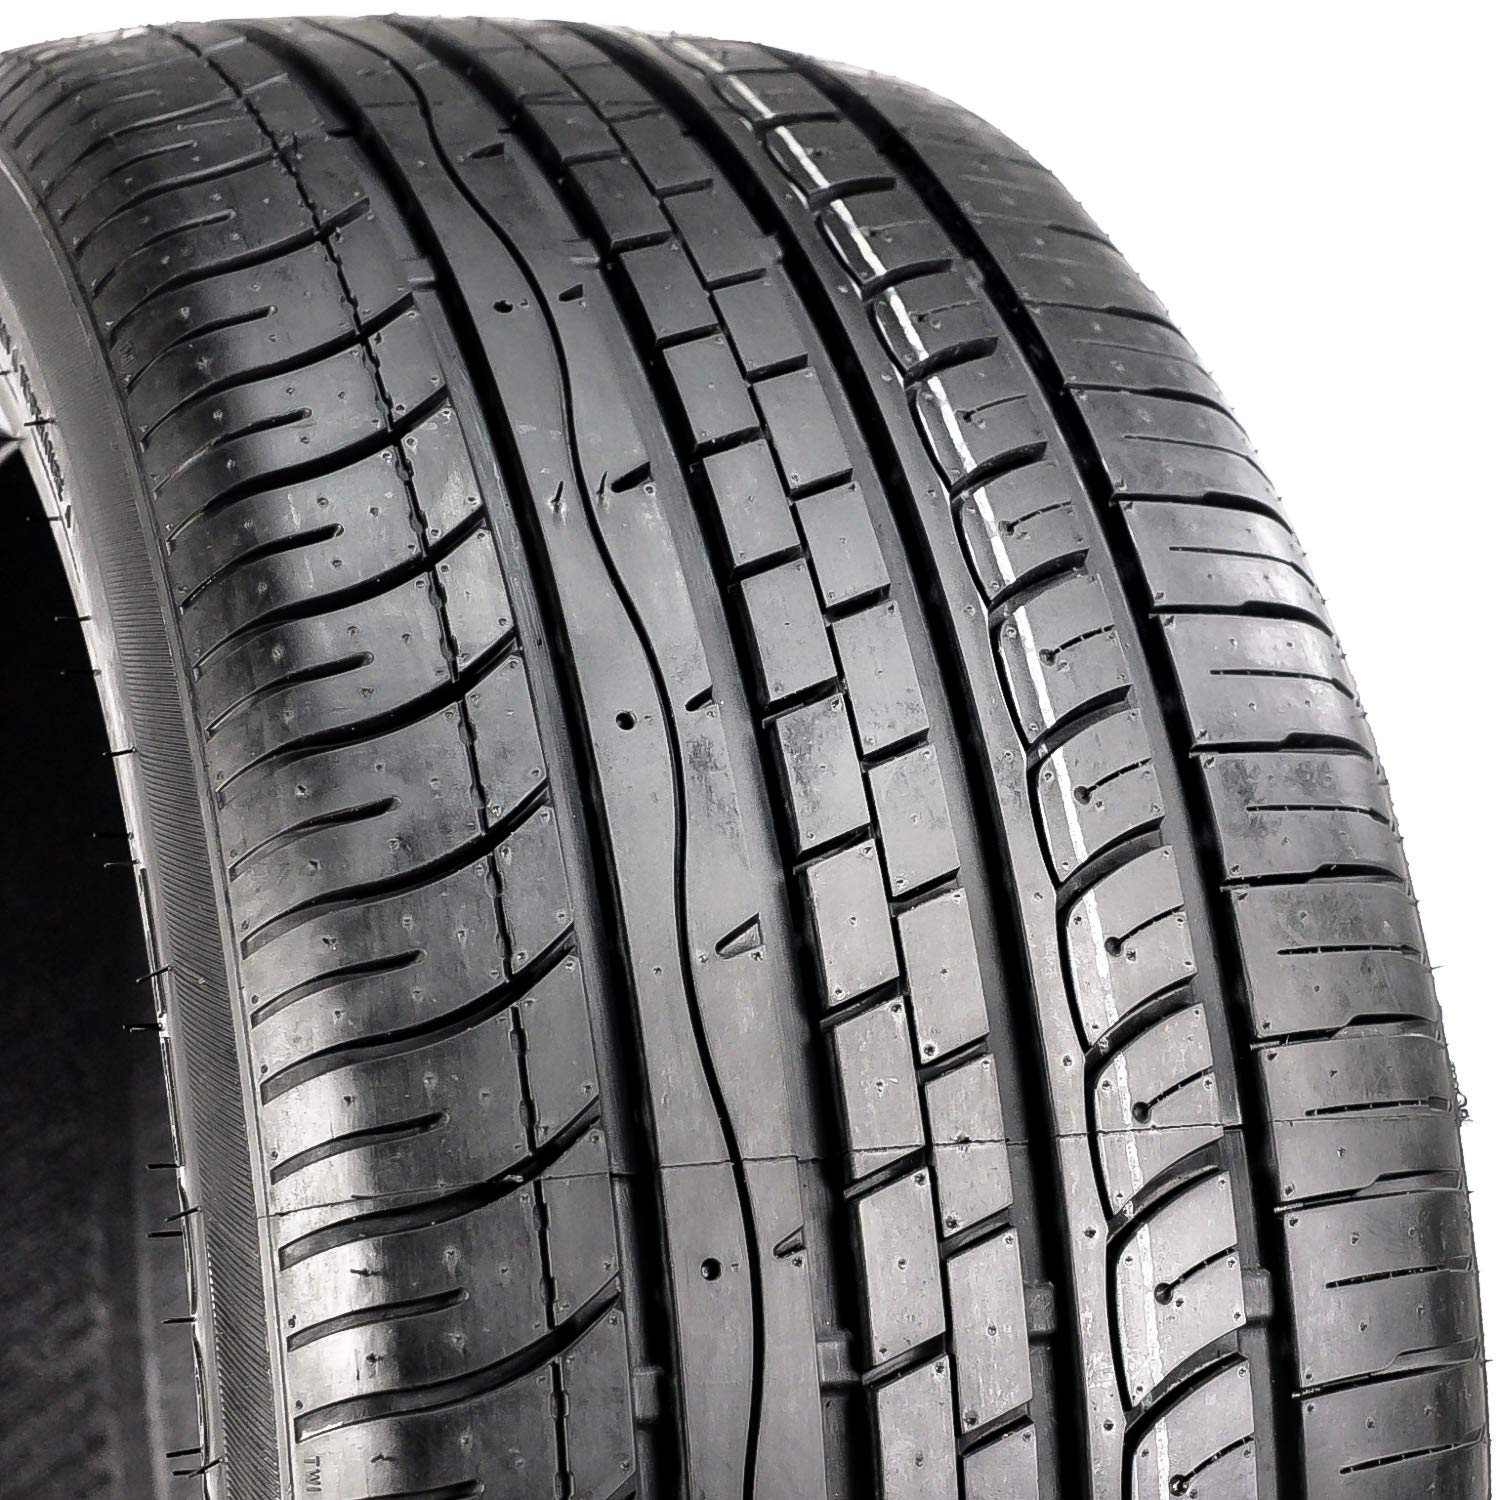 TWO Fullrun F7000 Performance All-Season Radial Tires-275//40R20 106V XL Set of 2